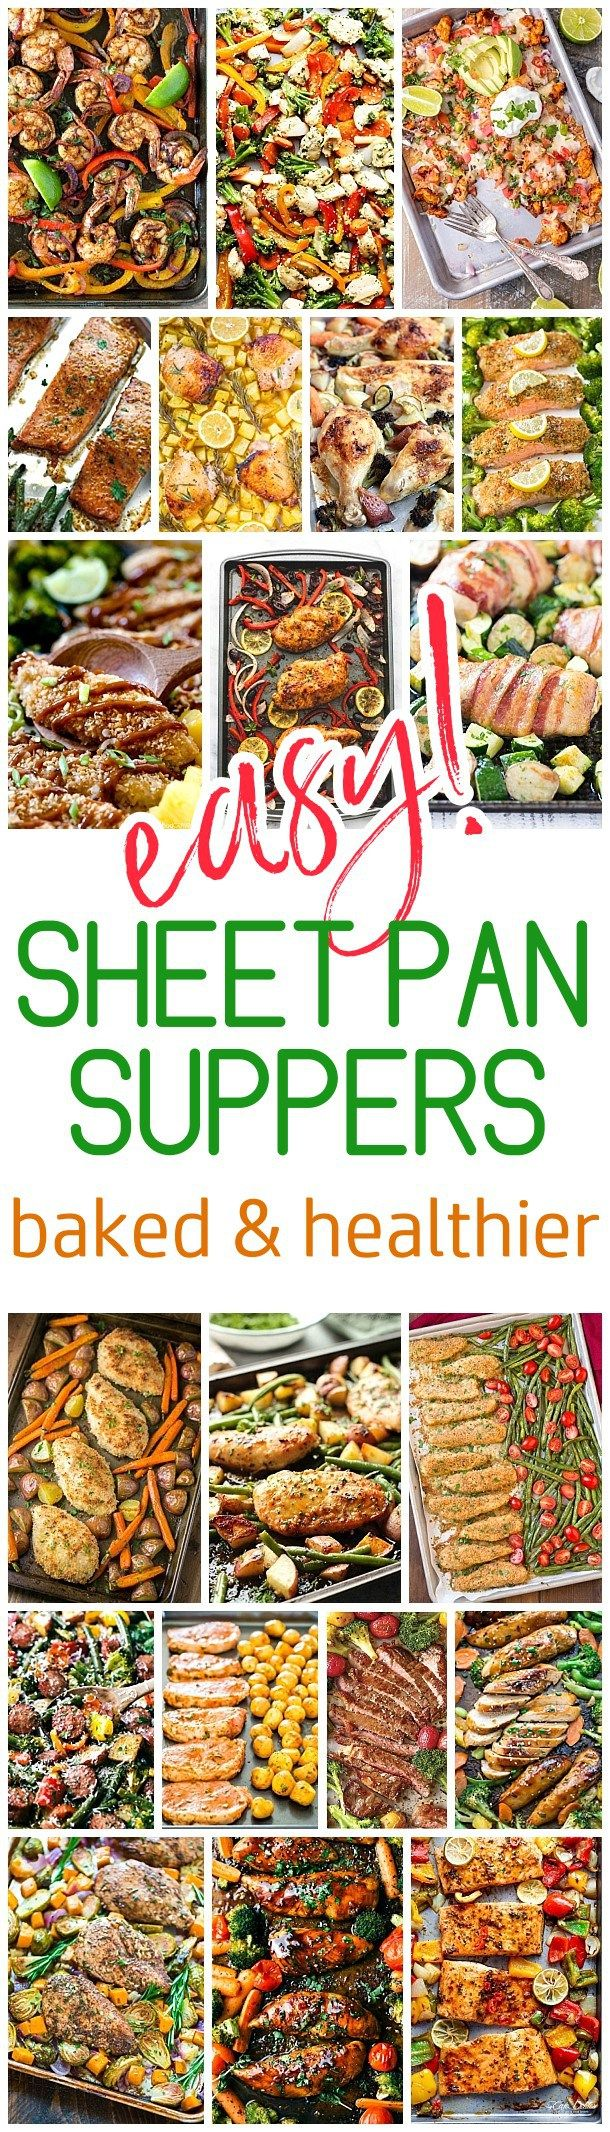 the best sheet pan suppers recipes easy and quick baked family